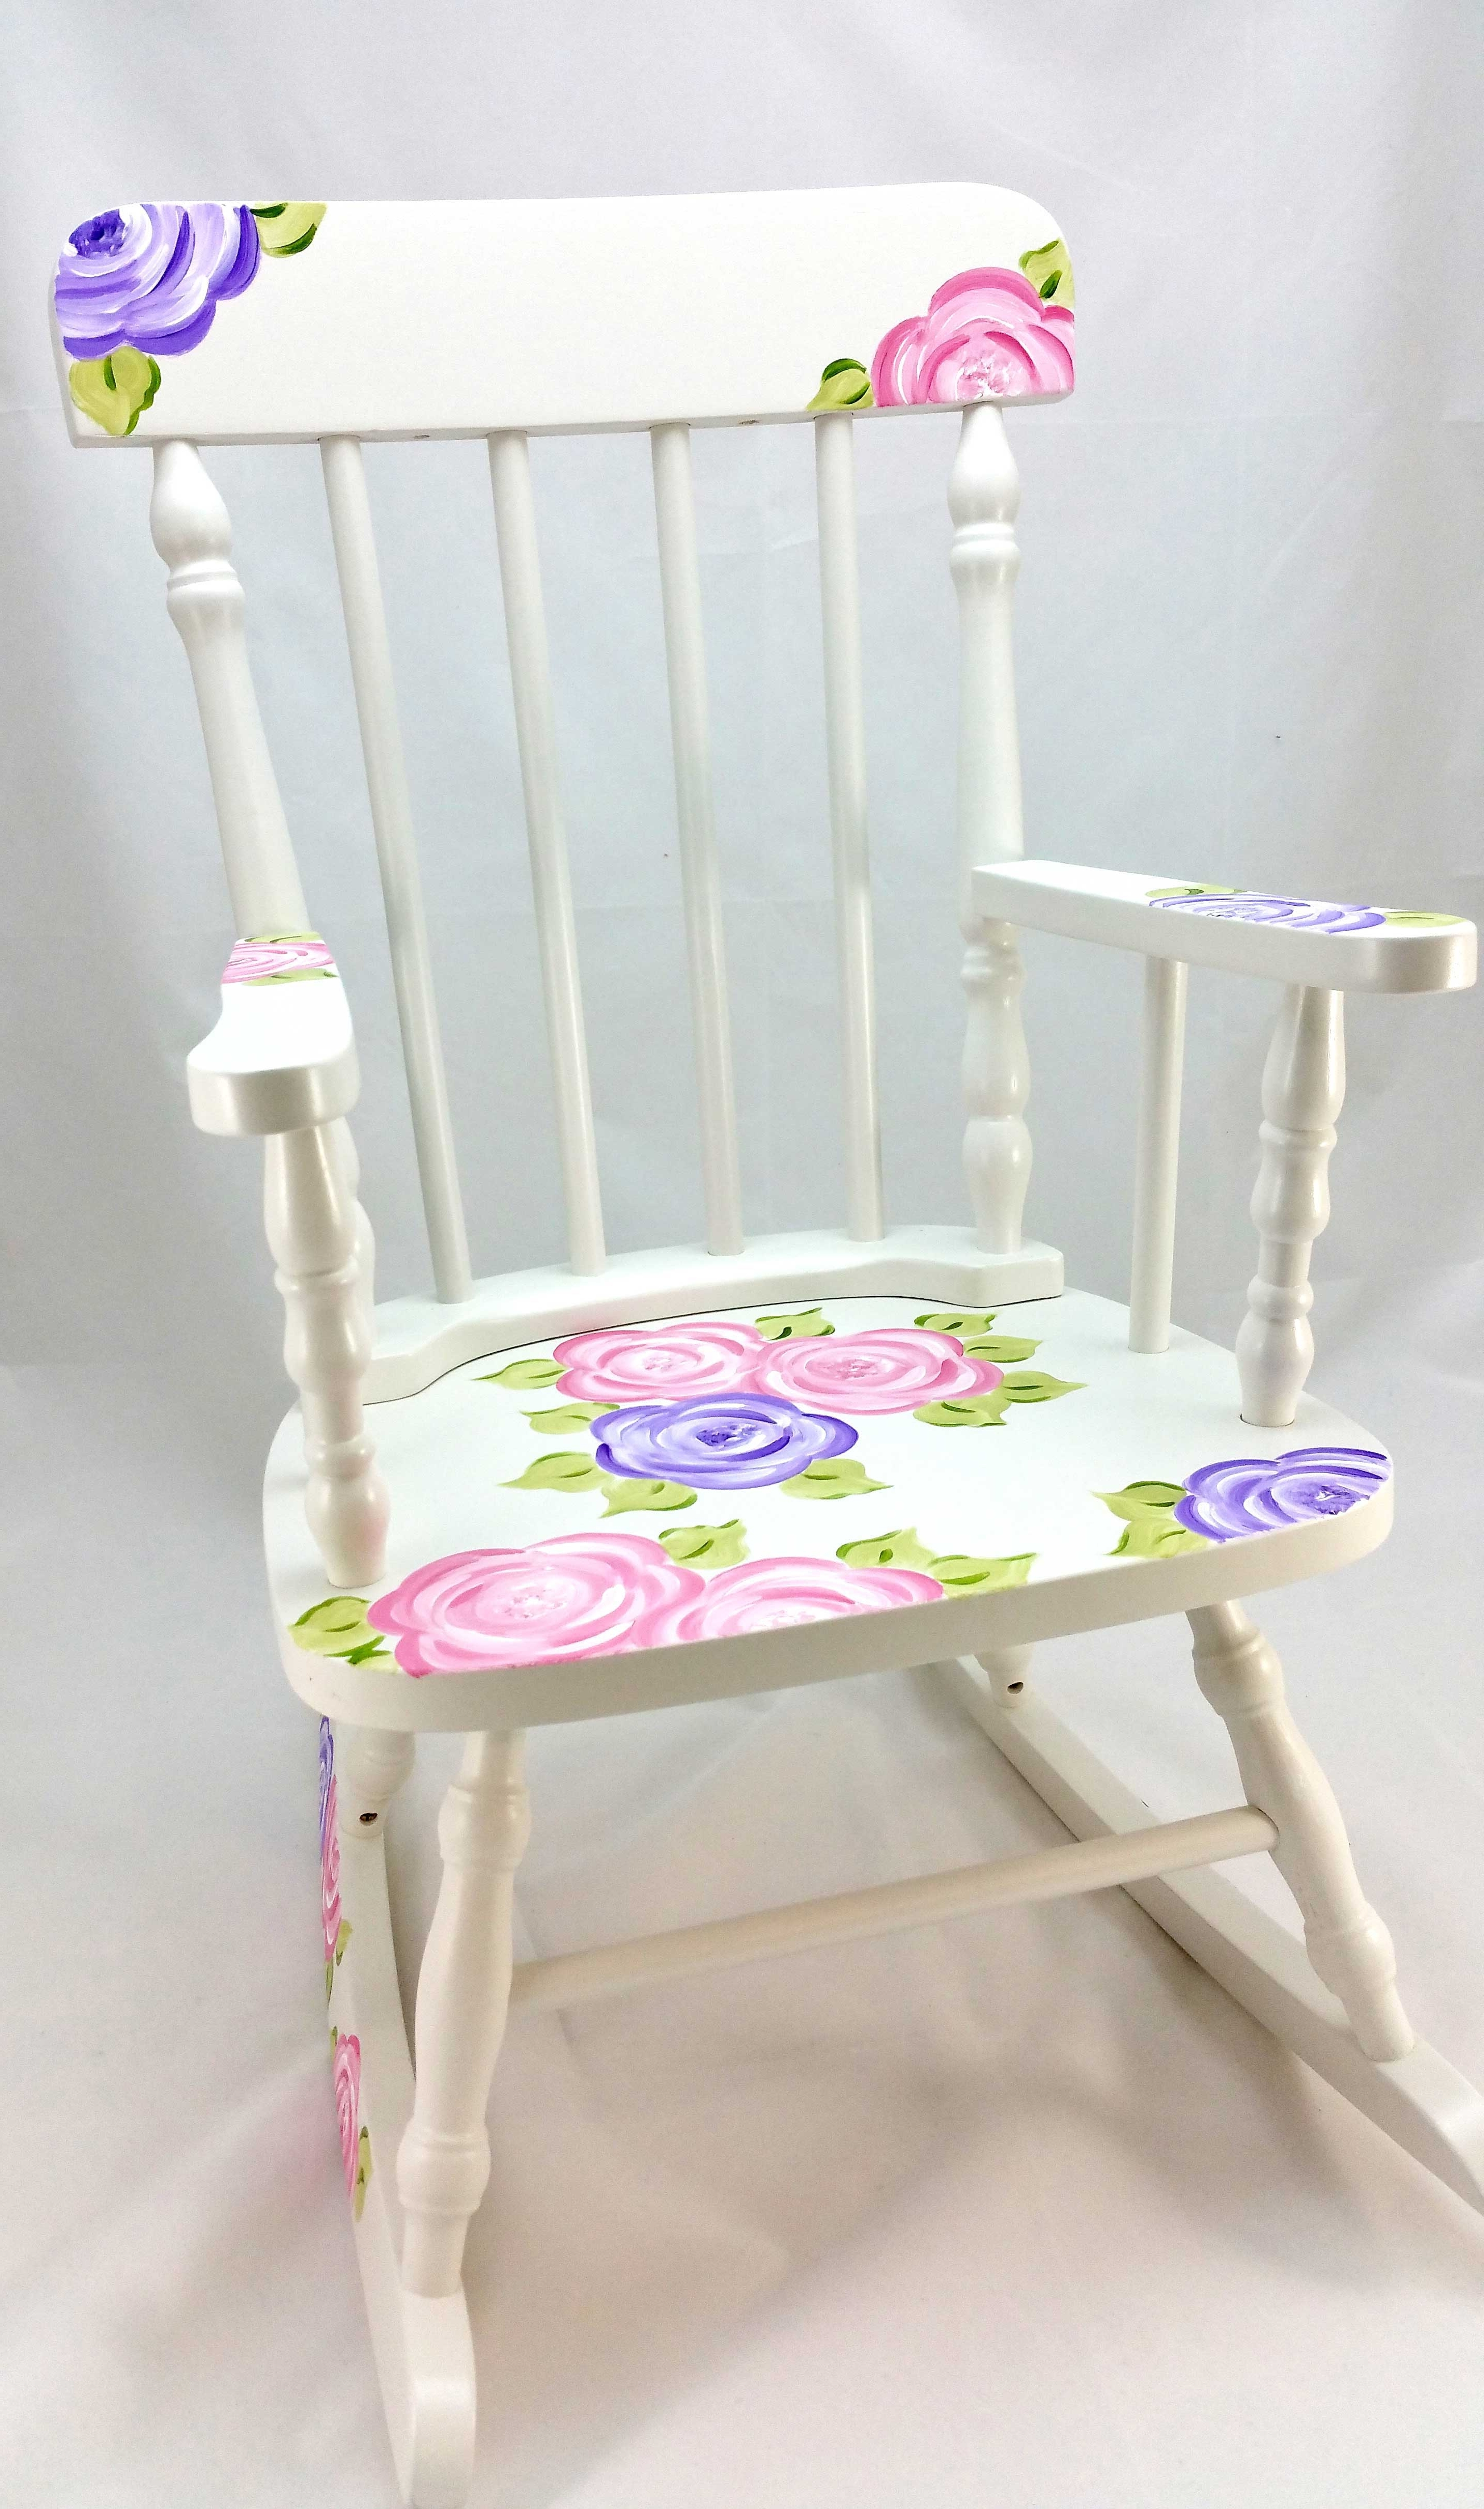 Most Recent Mod Roses Personalized Rocking Chair – Purple Pumpkin Gifts Inside Rocking Chairs At Roses (View 8 of 20)